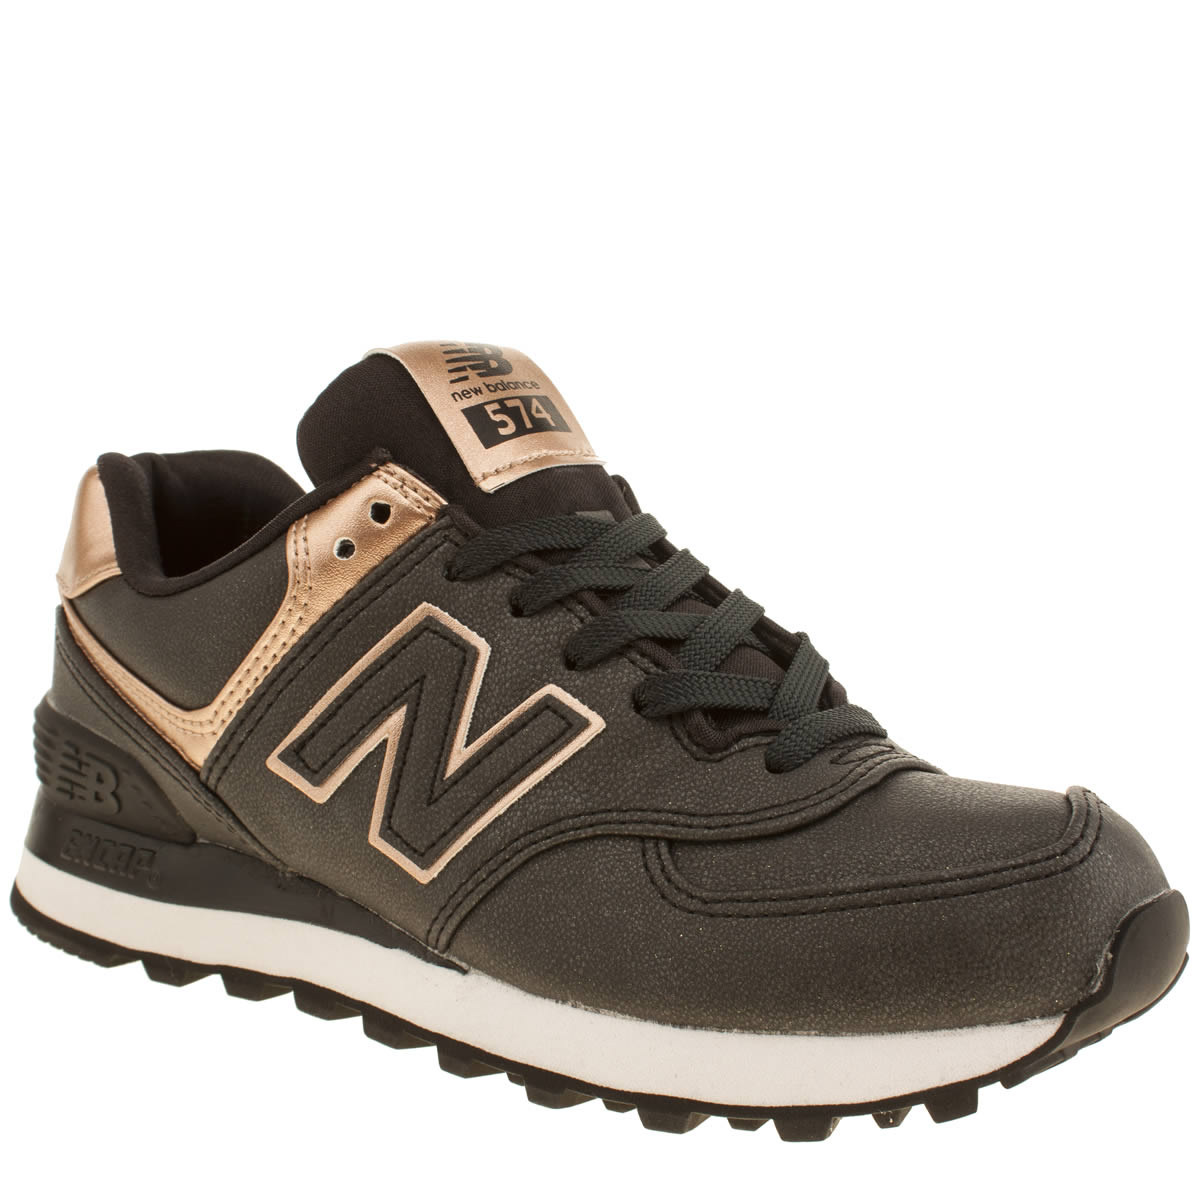 new balance 574 womens black gold man made trainers ebay. Black Bedroom Furniture Sets. Home Design Ideas